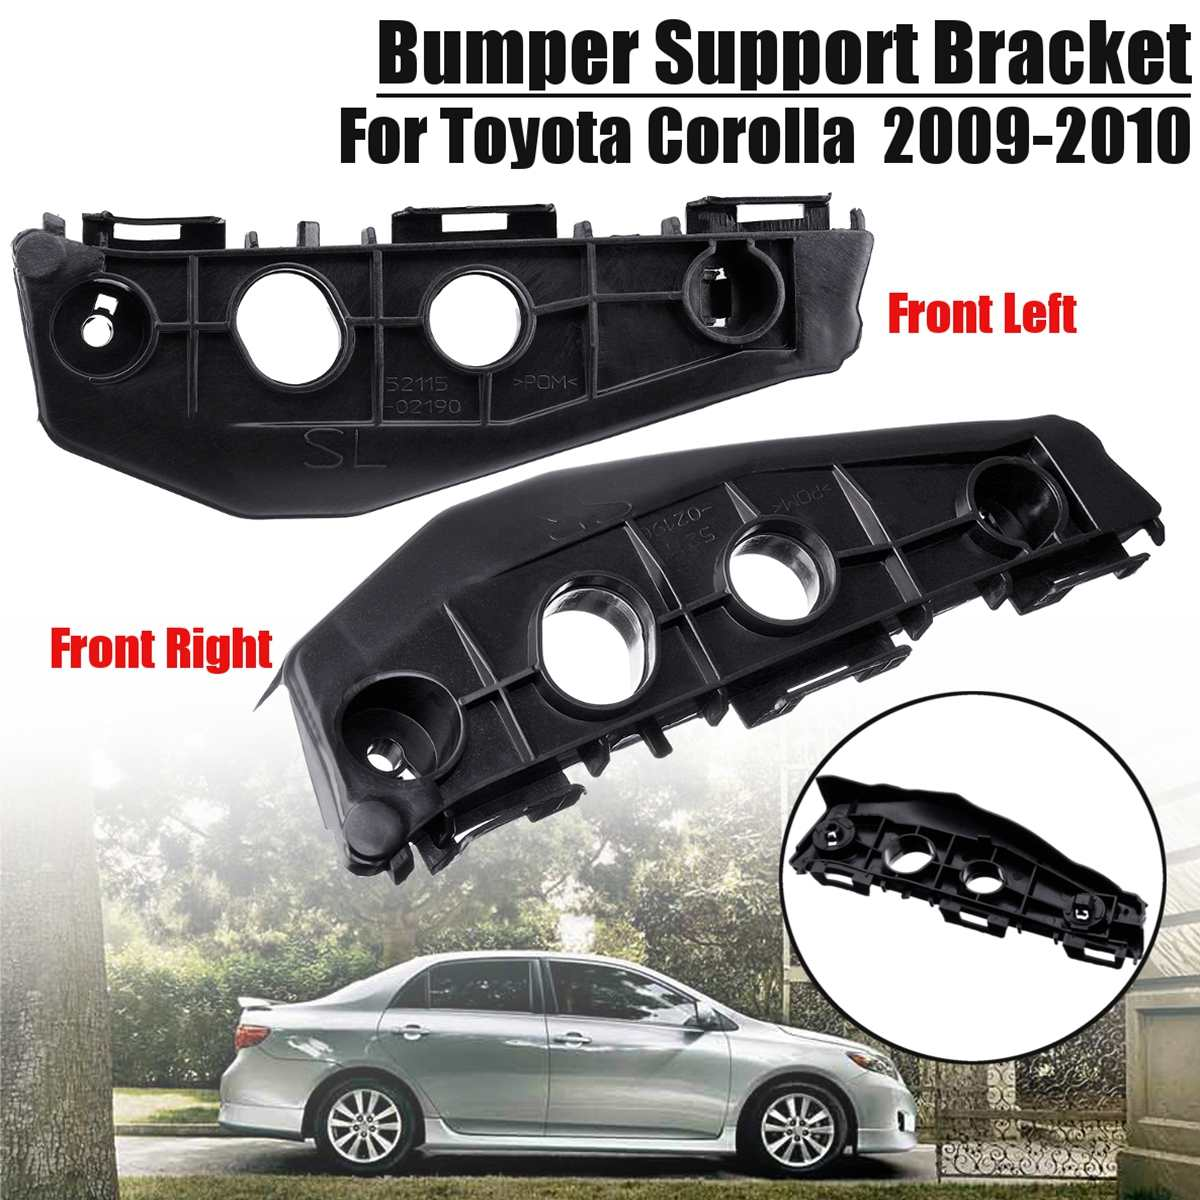 1Pair Front LEFT /& RIGHT Side Bumper Brackets For Honda Accord 2011-2013